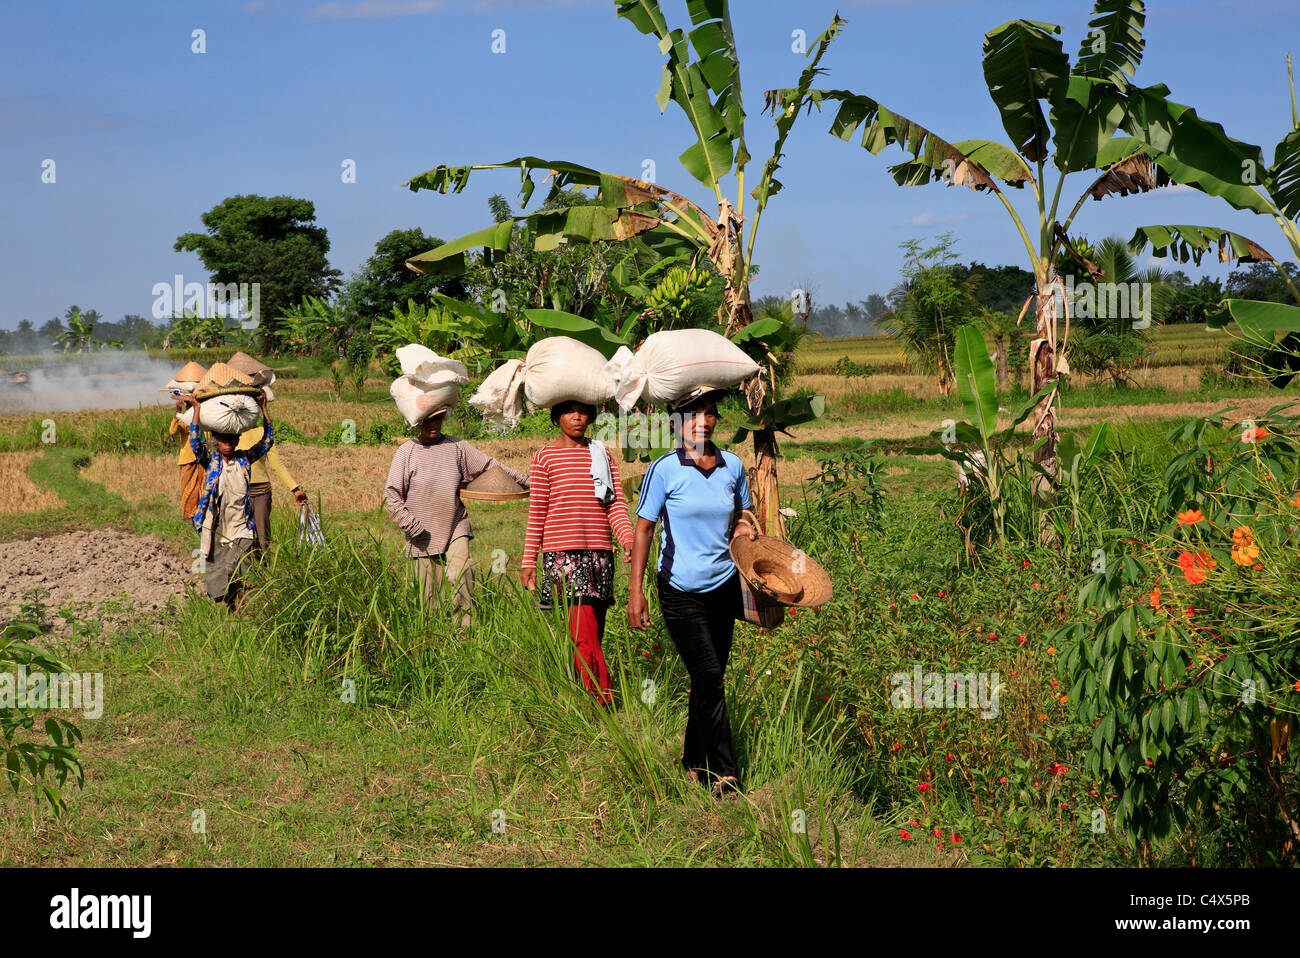 Women workers walking through the rice fields with bags of rice on their heads. Ubud ,Bali, Indonesia - Stock Image